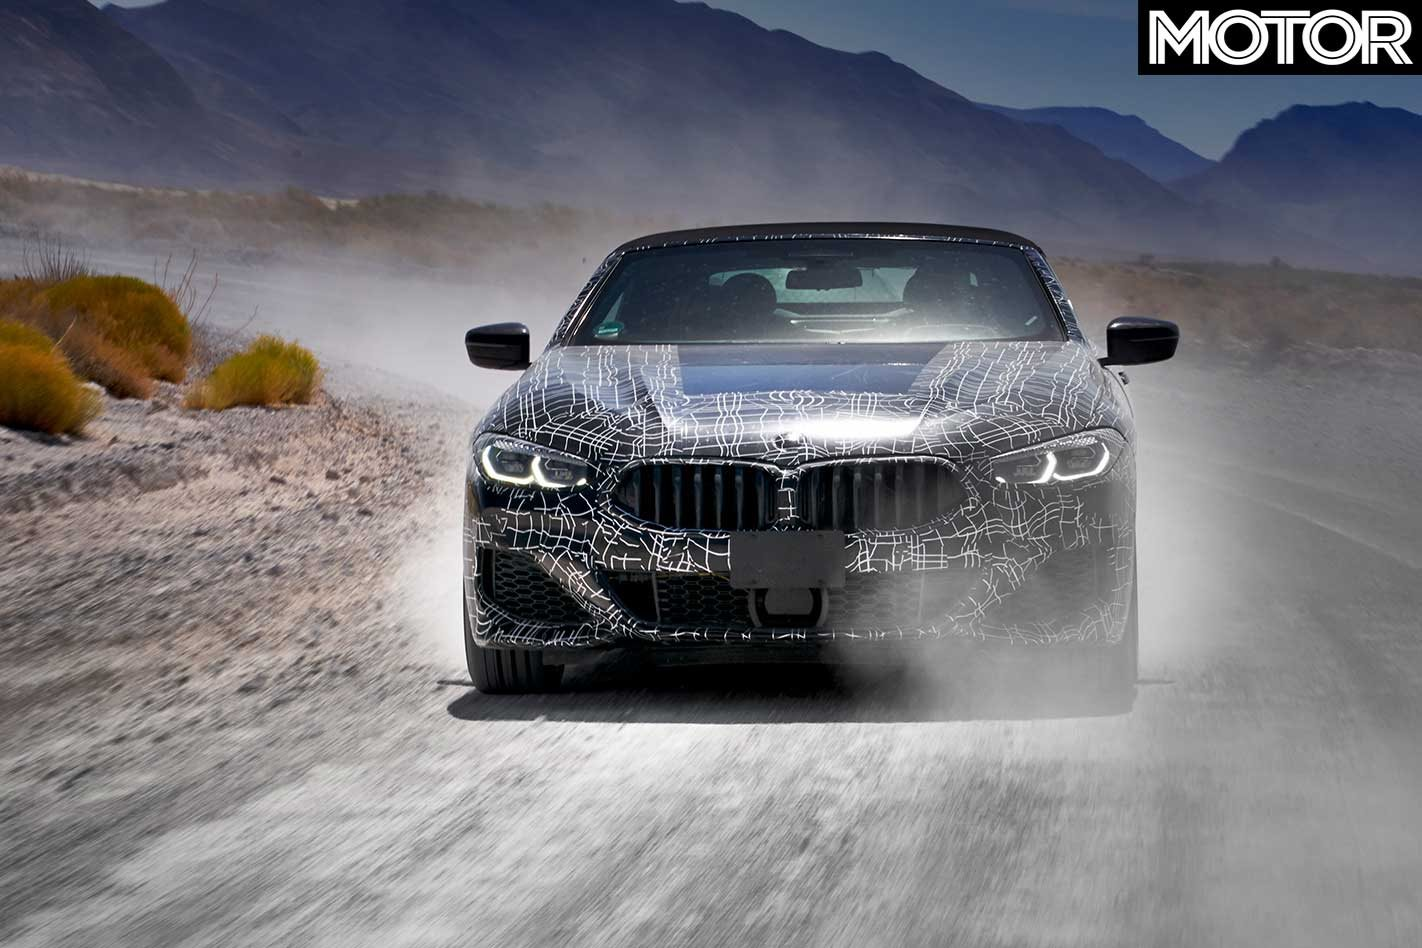 BMW Says The Development Program For 8 Series Convertible Has Also Undergone Testing At Winter Centre In Arjeplog Sweden